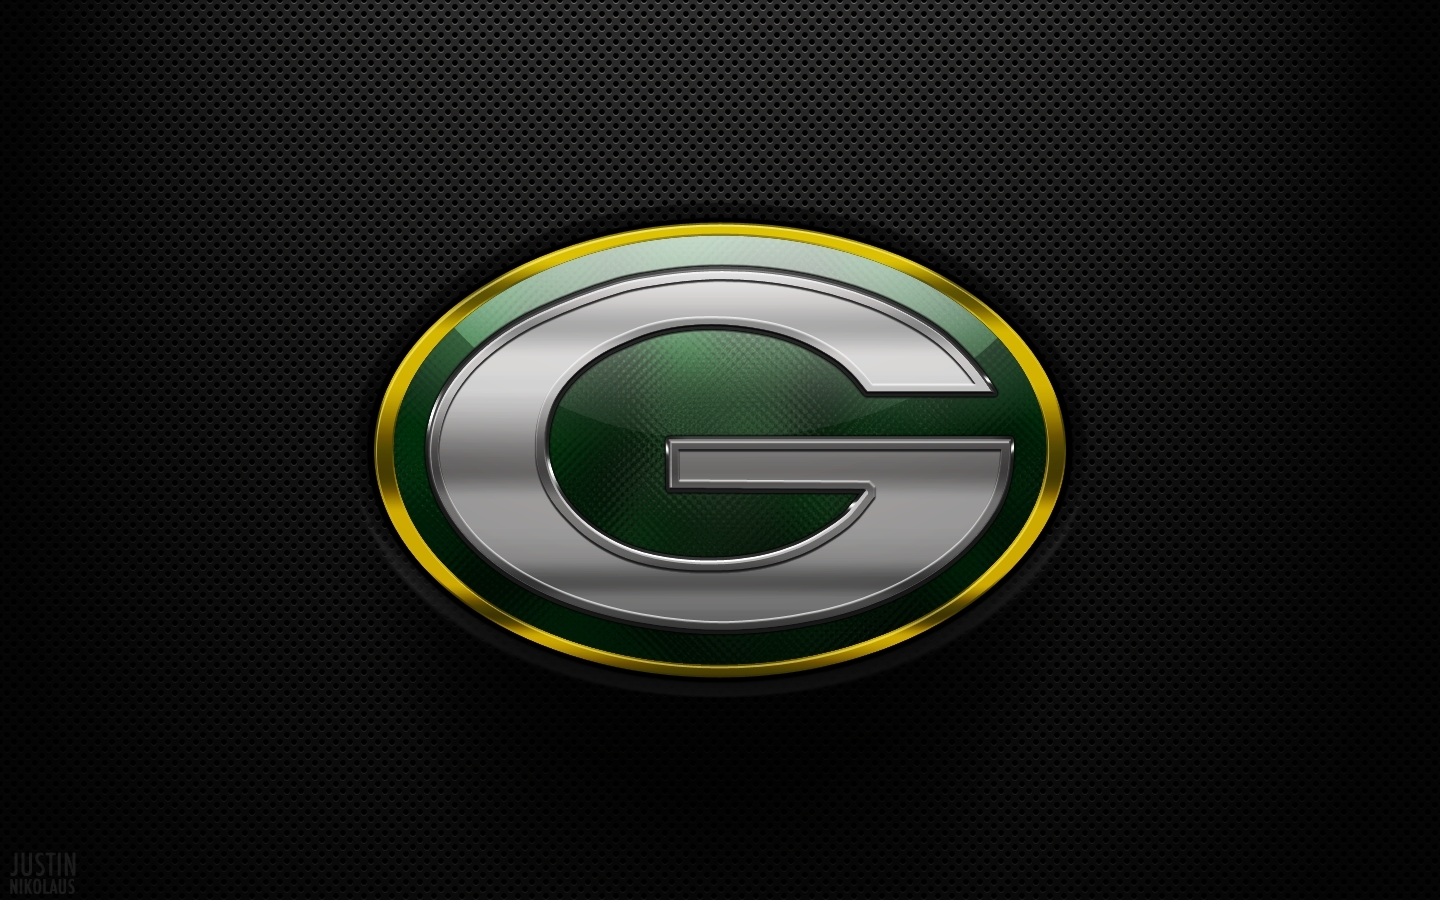 green bay packers hd images wallpaper days of design just place to